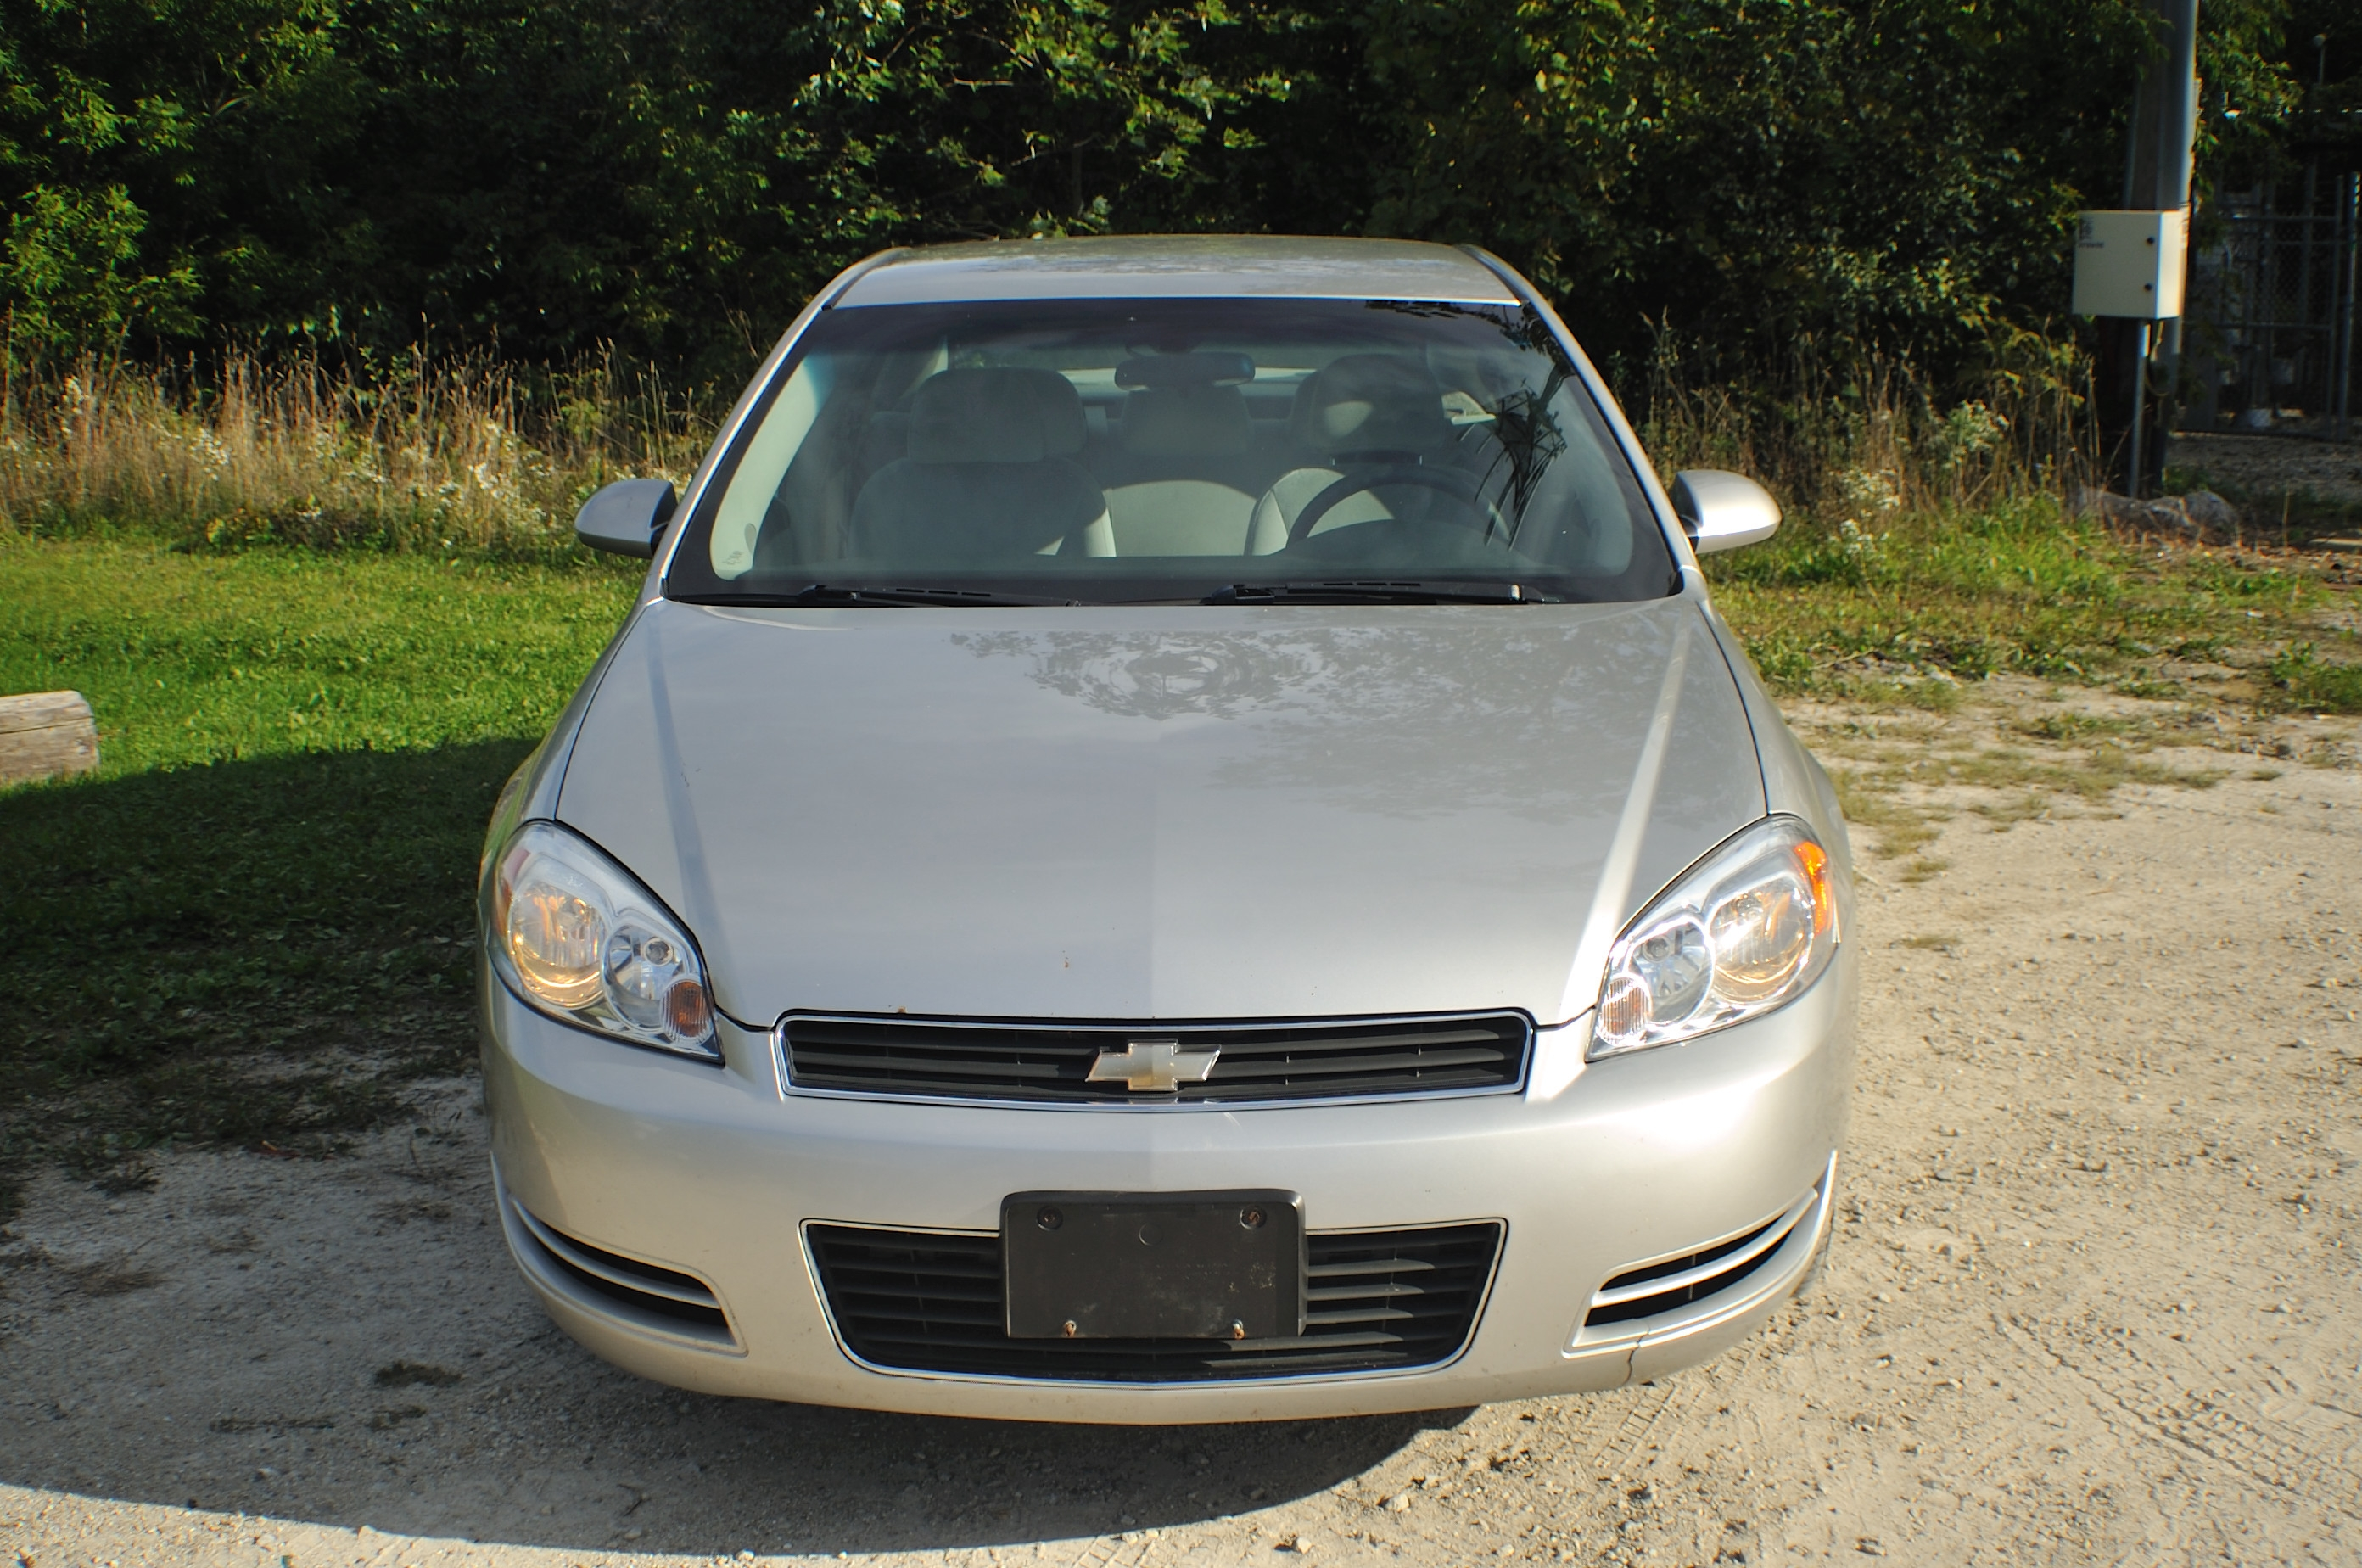 2007 Chevrolet Impala LS Silver Sedan Used Car Sale Gurnee Kenosha Mchenry